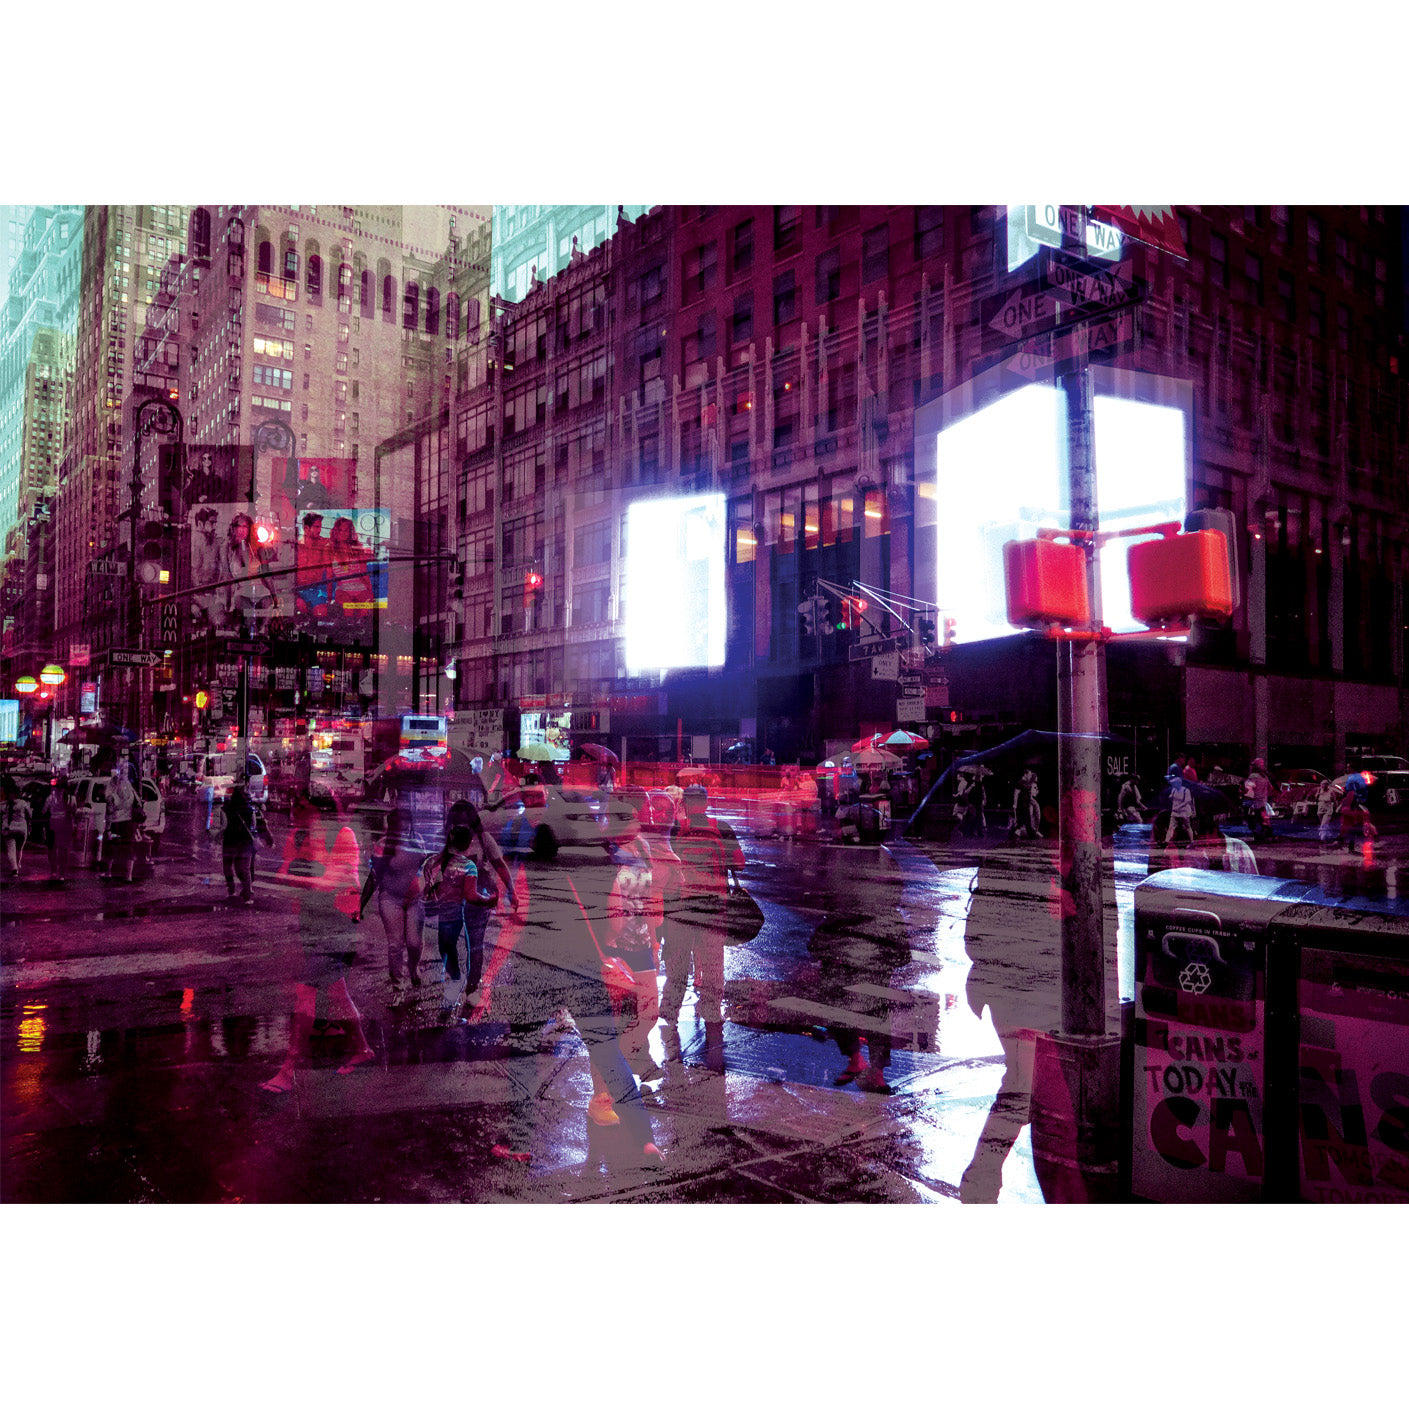 Limited Edition colour fine art photography A2 size art giclee print taken on the streets of New York City